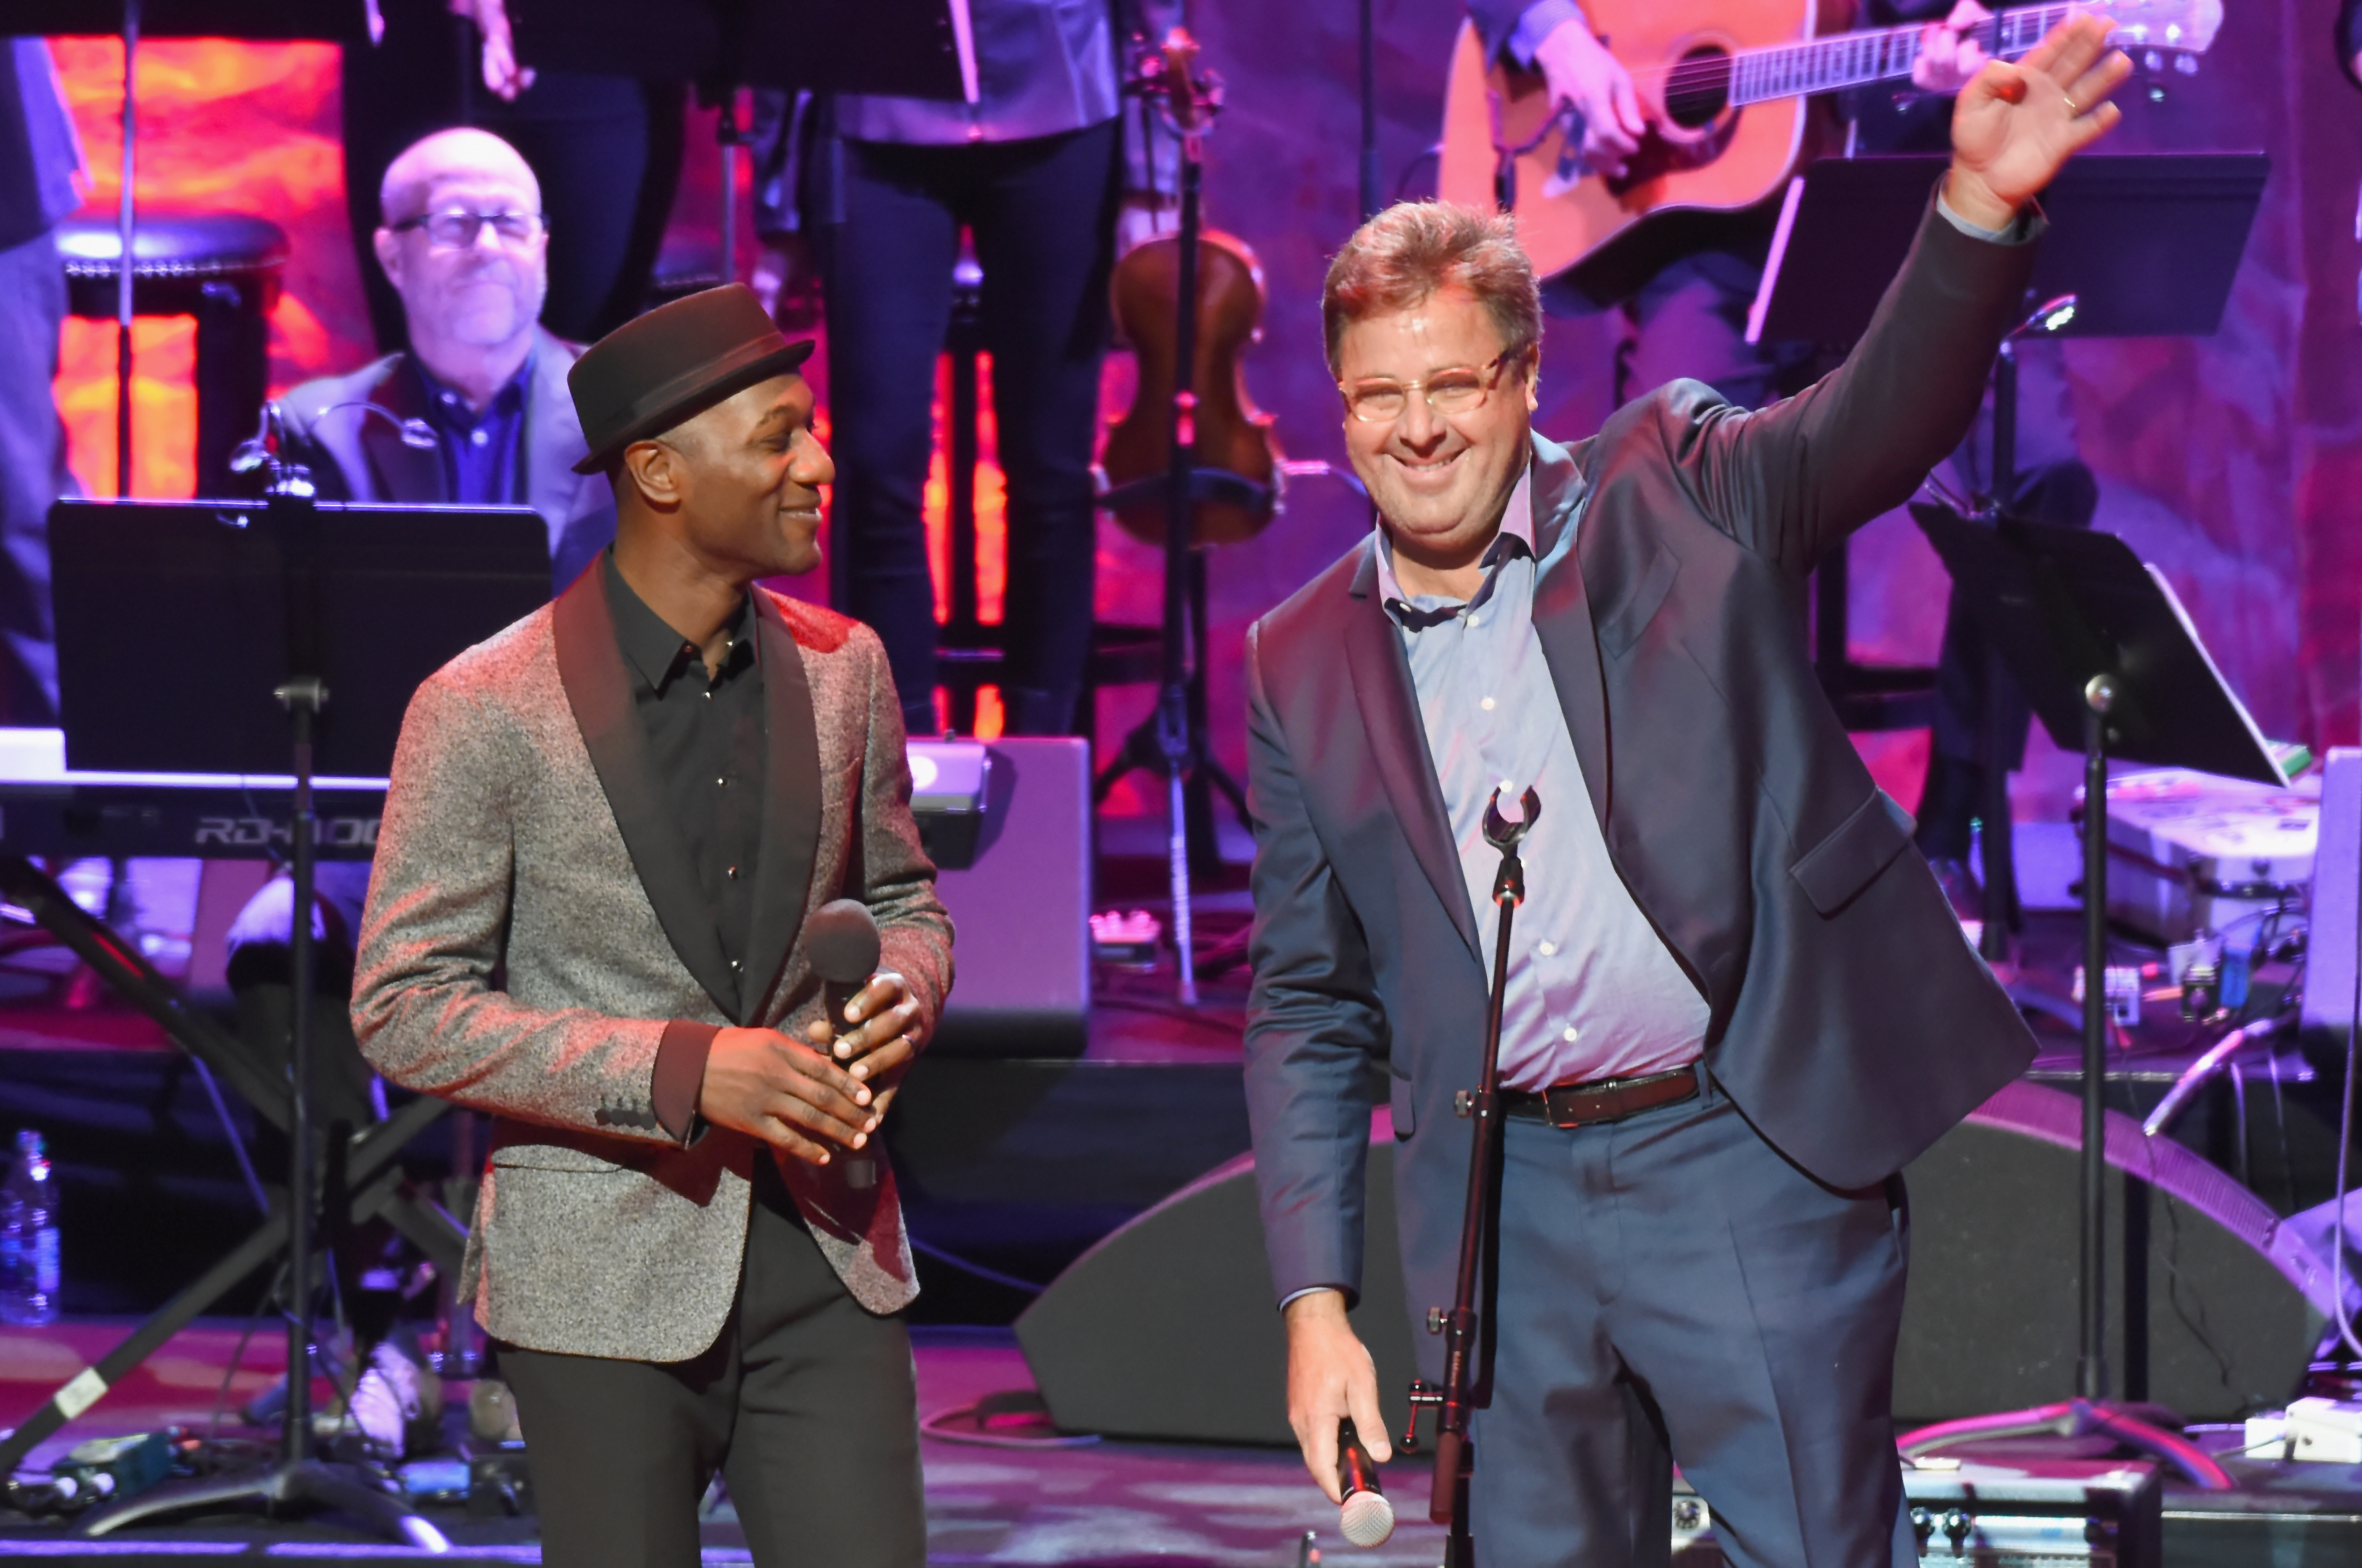 Aloe Blacc and Vince Gill speak onstage during the Country Music Hall of Fame and Museum Medallion Ceremony; Photo by Rick Diamond/Getty Images for Country Music Hall Of Fame & Museum